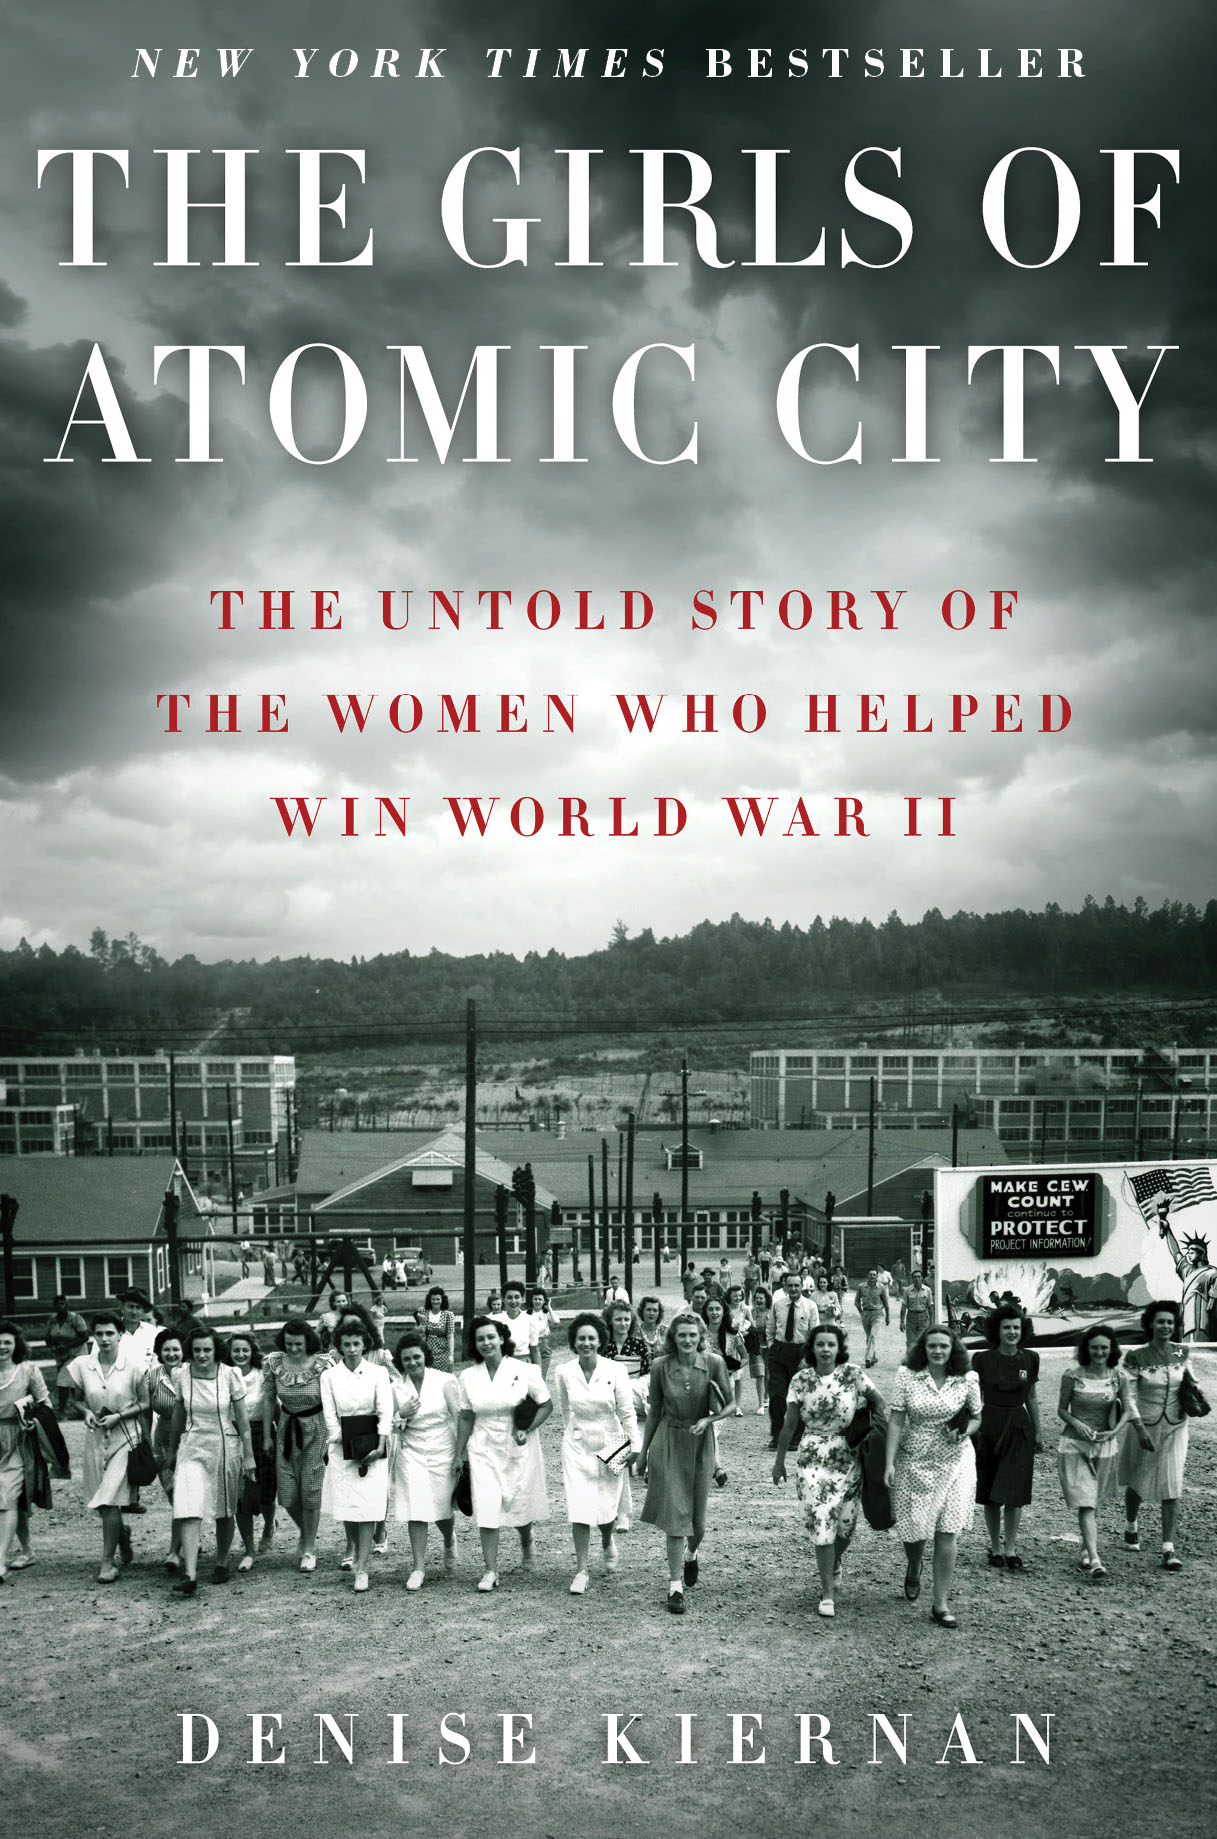 Girls of Atomic City — National Tour in May & June    My wife Denise Kiernan is hitting the road May and June to promote her book,   The Girls of Atomic City .  Here's the list of cities, bookstores, and events. The first half is a driving tour through the Southeast; the second half will see her bopping around the U.S. to various bookstores. The list is finalized except for three cities, marked  to be determined.       SOUTHERN DRIVING TOUR             Charlotte, NC         Thursday, May 2       Park Road Books 7 pm        4139 Park Rd.       Charlotte, NC       *Talk, Q&A, Signing              Greenville, SC         Friday, May 10         Fiction Addiction 12 pm         Venue:    City Range Restaurant       615 Haywood Rd.       Greenville, SC       *Lunch Event & Signing              Nashville, TN         Tuesday, May 14         Parnassus Books 6:30 pm        3900 Hillsboro Pike       Nashville, TN       *Talk, Q&A, Signing                Raleigh, NC         Thursday, May 16         Quail Ridge Books 7:30 pm        3522 Wade Ave.       Raleigh, NC       *Talk, Q&A, Signing              Southern Pines, NC         Friday, May 17         Country Bookshop 4:30 pm        140 NW Broad St.       Southern Pines, NC       *Talk, Q&A, Signing                Chapel Hill, NC         Saturday, May 18         Flyleaf Books Noon        752 Martin Luther King Jr. Blvd.       Chapel Hill, NC       *Talk, Q&A, Signing                Knoxville, TN         Tuesday, May 21         Union Ave Books 6 pm         Venue:    The East Tennessee History Center Auditorium       601 Gay St.       Knoxville TN       *Talk, Q&A, Signing                Atlanta, GA         Tuesday, June 4         A Cappella Books 7 pm         Venue:    Carter Presidential Library       441 Freedom Parkway       Atlanta, GA       *Talk, Q&A, Signing              August 30 - September 1, 2013         Decatur Festival of Books        Details TBD              Sylva, NC         Saturday, June 29         City Lights Bookstore 6:30 pm        3 East Jackson St.       Sylva, NC       *Talk, Q&A, Signing              * * *             *NATIONAL TOUR                 Milwaukee, WI         Saturday, June 8         Boswell Books 2 pm        2559 N Downer Ave.       Milwaukee, WI       *Talk, Q&A, Signing                Chicago, IL         Sunday, June 9         Chicago Tribune Printers Row Festival         Solo Presentation        Details TBD                Lexington, KY         Wednesday, June 12         Joseph-Beth Booksellers 7 pm        161 Lexington Green Circle       Lexington KY       *Talk, Q&A, Signing              Denver, CO         Friday, June 14         Tattered Cover 7:30 pm        2526 East Colfax Ave.       Denver, CO       *Talk, Q&A, Signing              Los Angeles, CA         Saturday, June 15         Vroman's Bookstore 4 pm        695 E. Colorado Blvd.       Pasadena, CA       *Talk, Q&A, Signing              San Francisco, CA         Monday, June 17         Book Passage 6 pm        1 Ferry Building       San Francisco, CA       *Talk, Q&A, Signing              Seattle, WA         Wednesday, June 19         Elliot Bay Book Company 7pm        1521 Tenth Ave.       Seattle, WA       *Talk, Q&A, Signing              Albuquerque, NM         Friday, June 21         Bookworks       Albuquerque, NM        Venue TBD